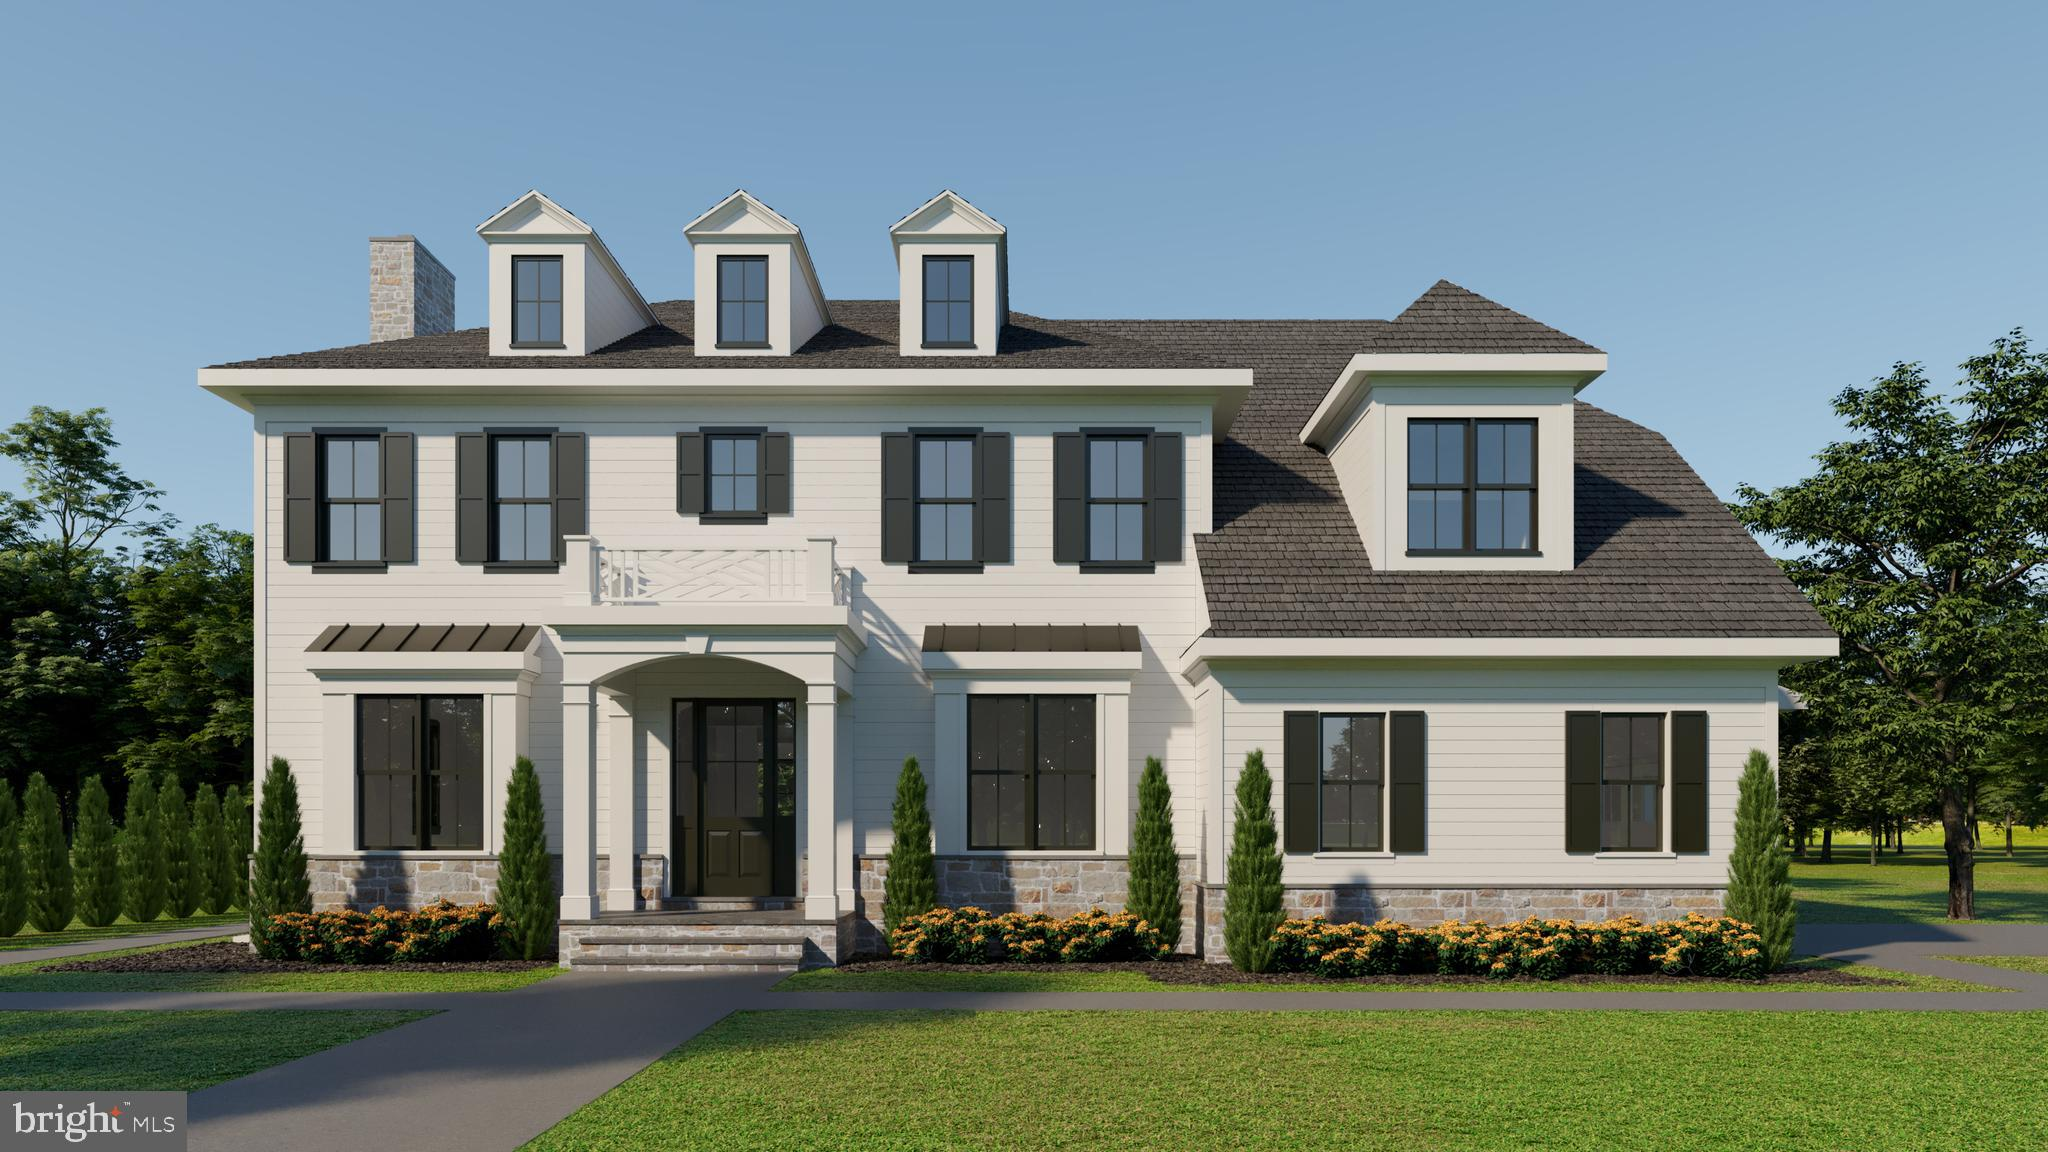 **Delivery Spring 2022** Welcome to this TO-BE-BUILT custom home by popular builder M-R Custom Homes